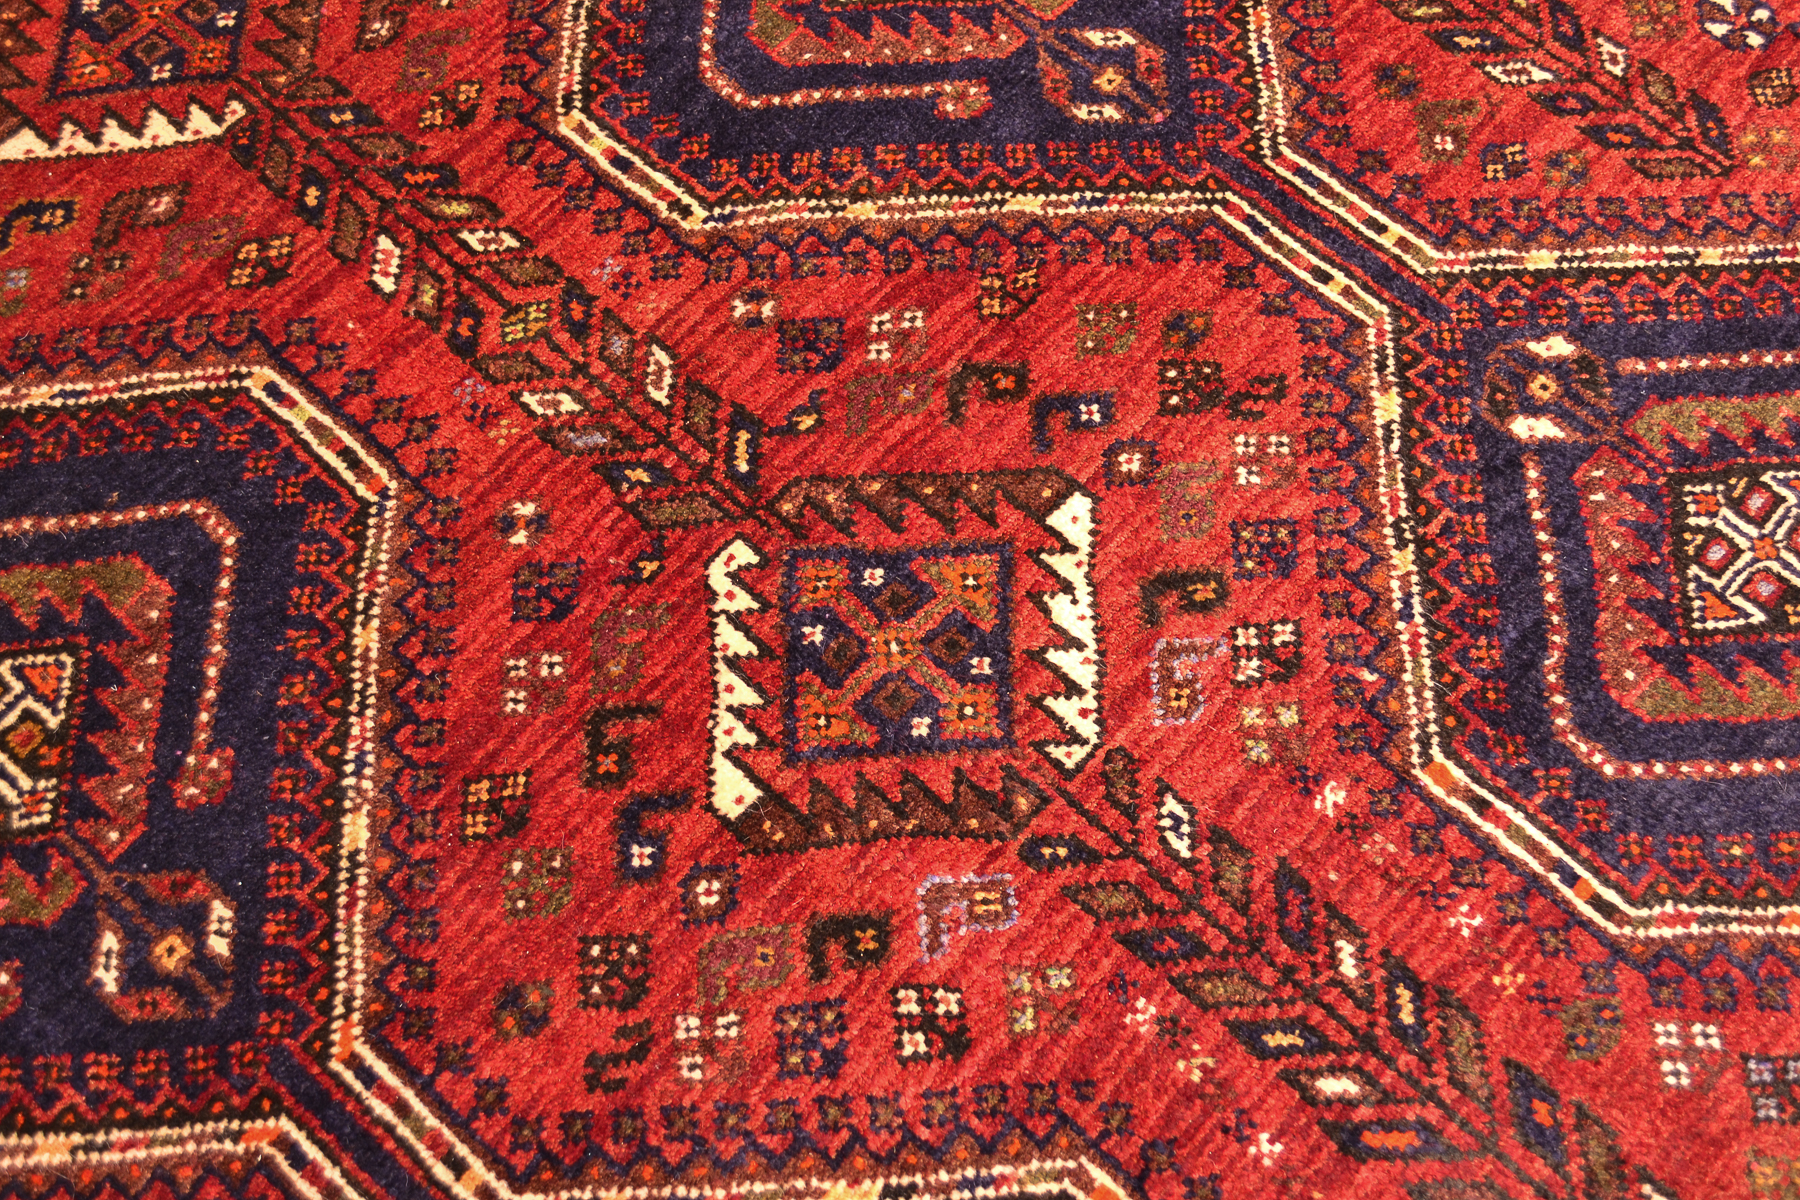 Persian Qashqai Carpet 2 52x1 80m The Oriental Rug Merchant